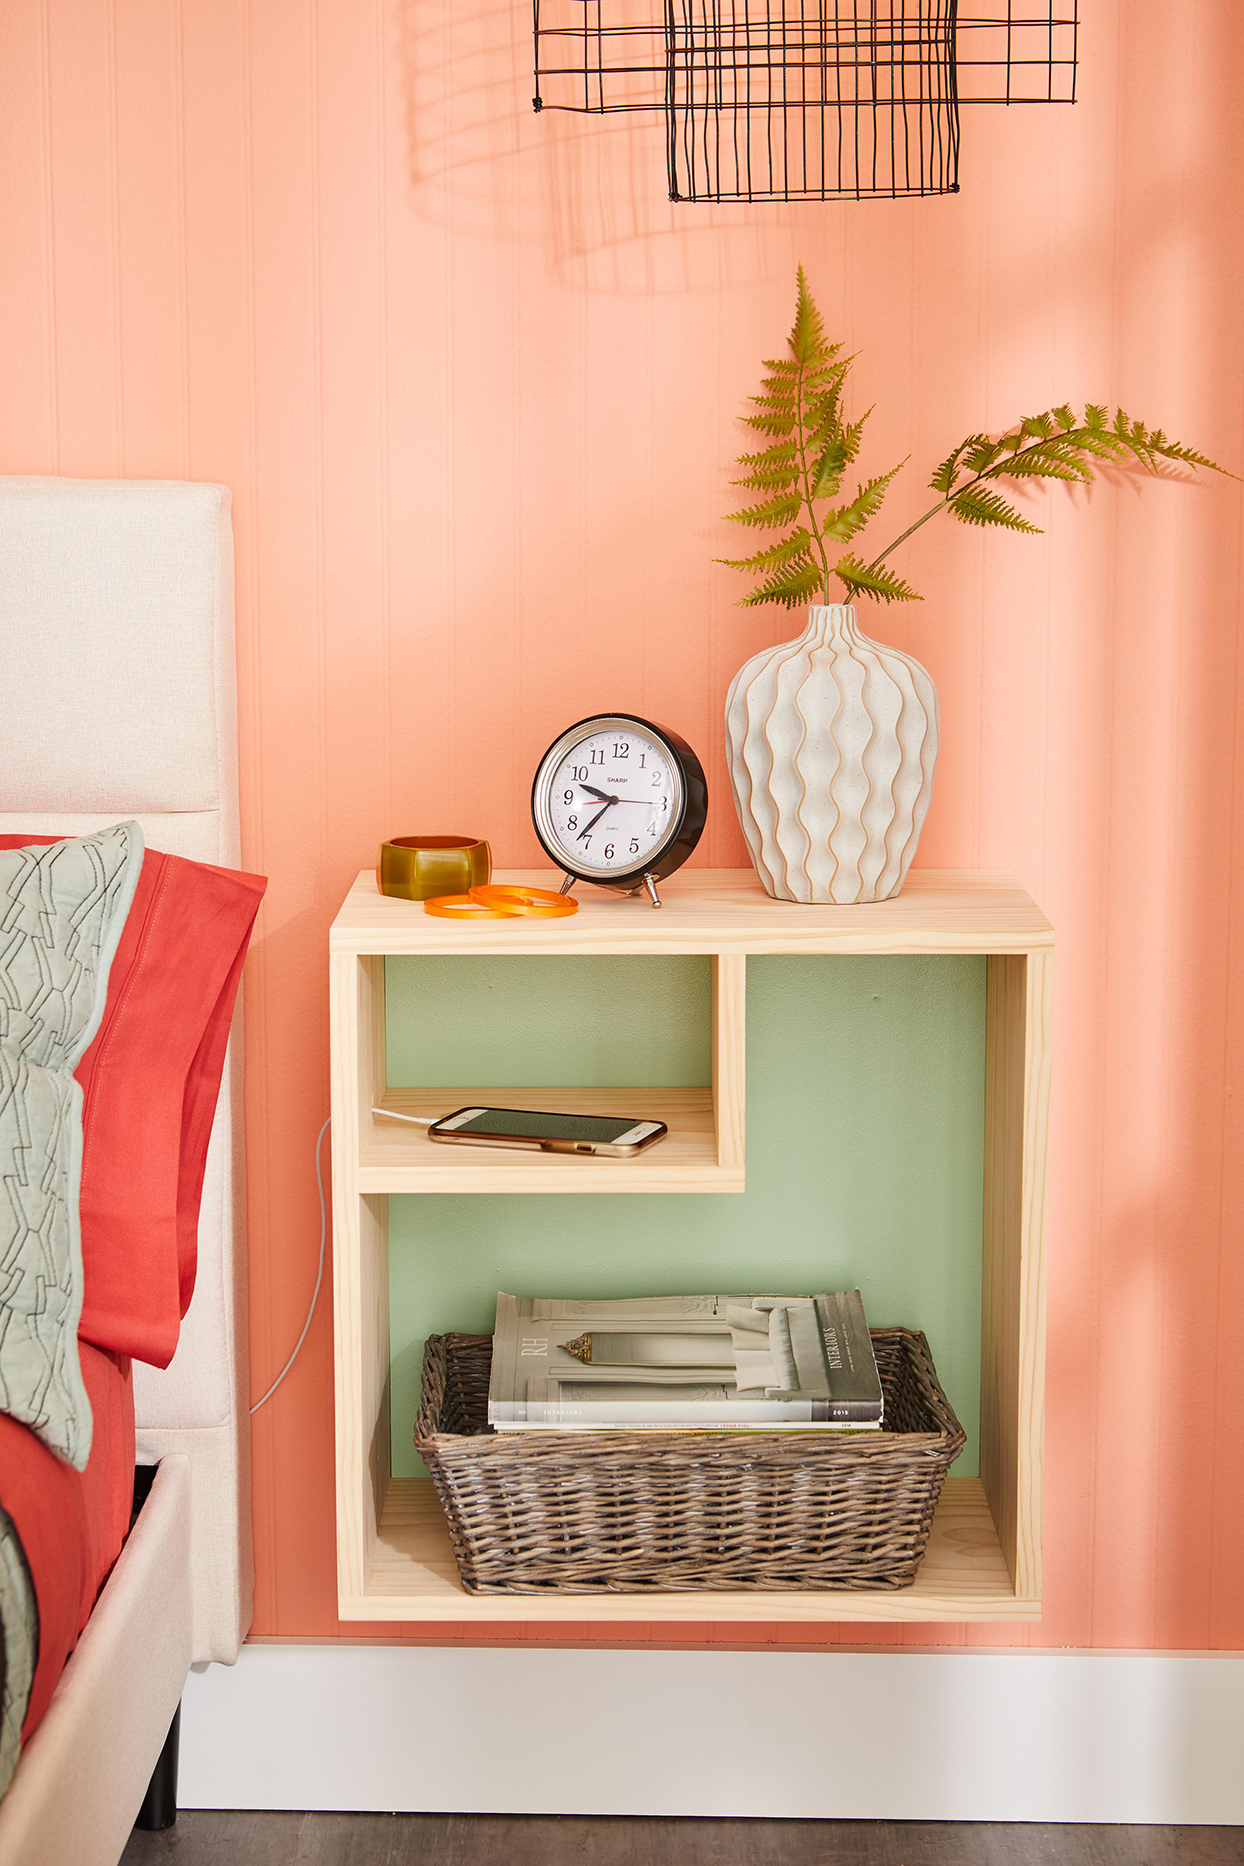 How to Build a Wall-Mounted Nightstand